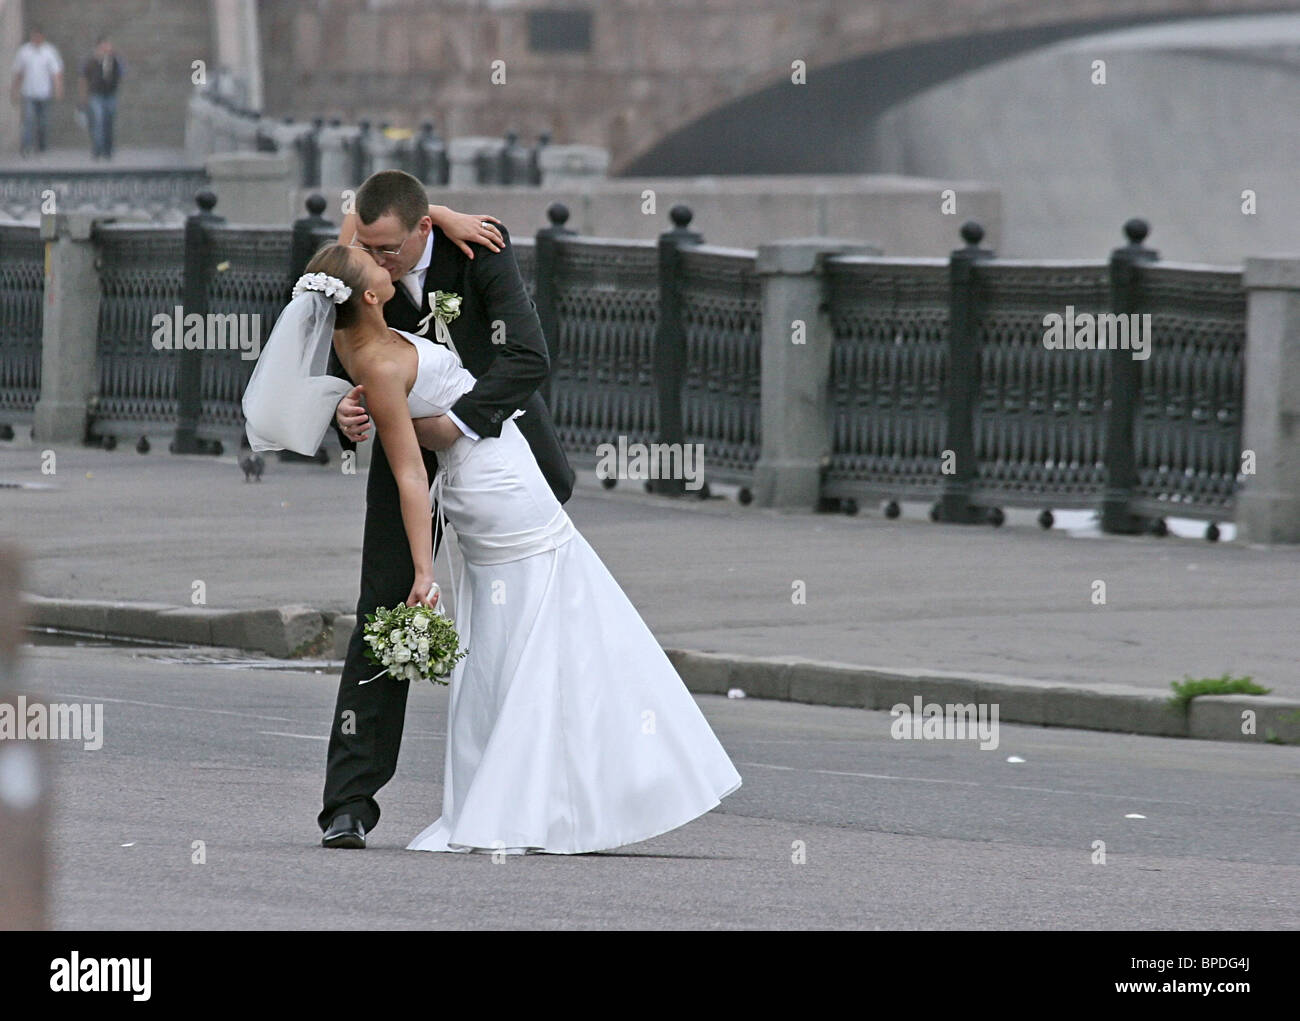 Moscow sees wedding boom on 07-07-07 - Stock Image